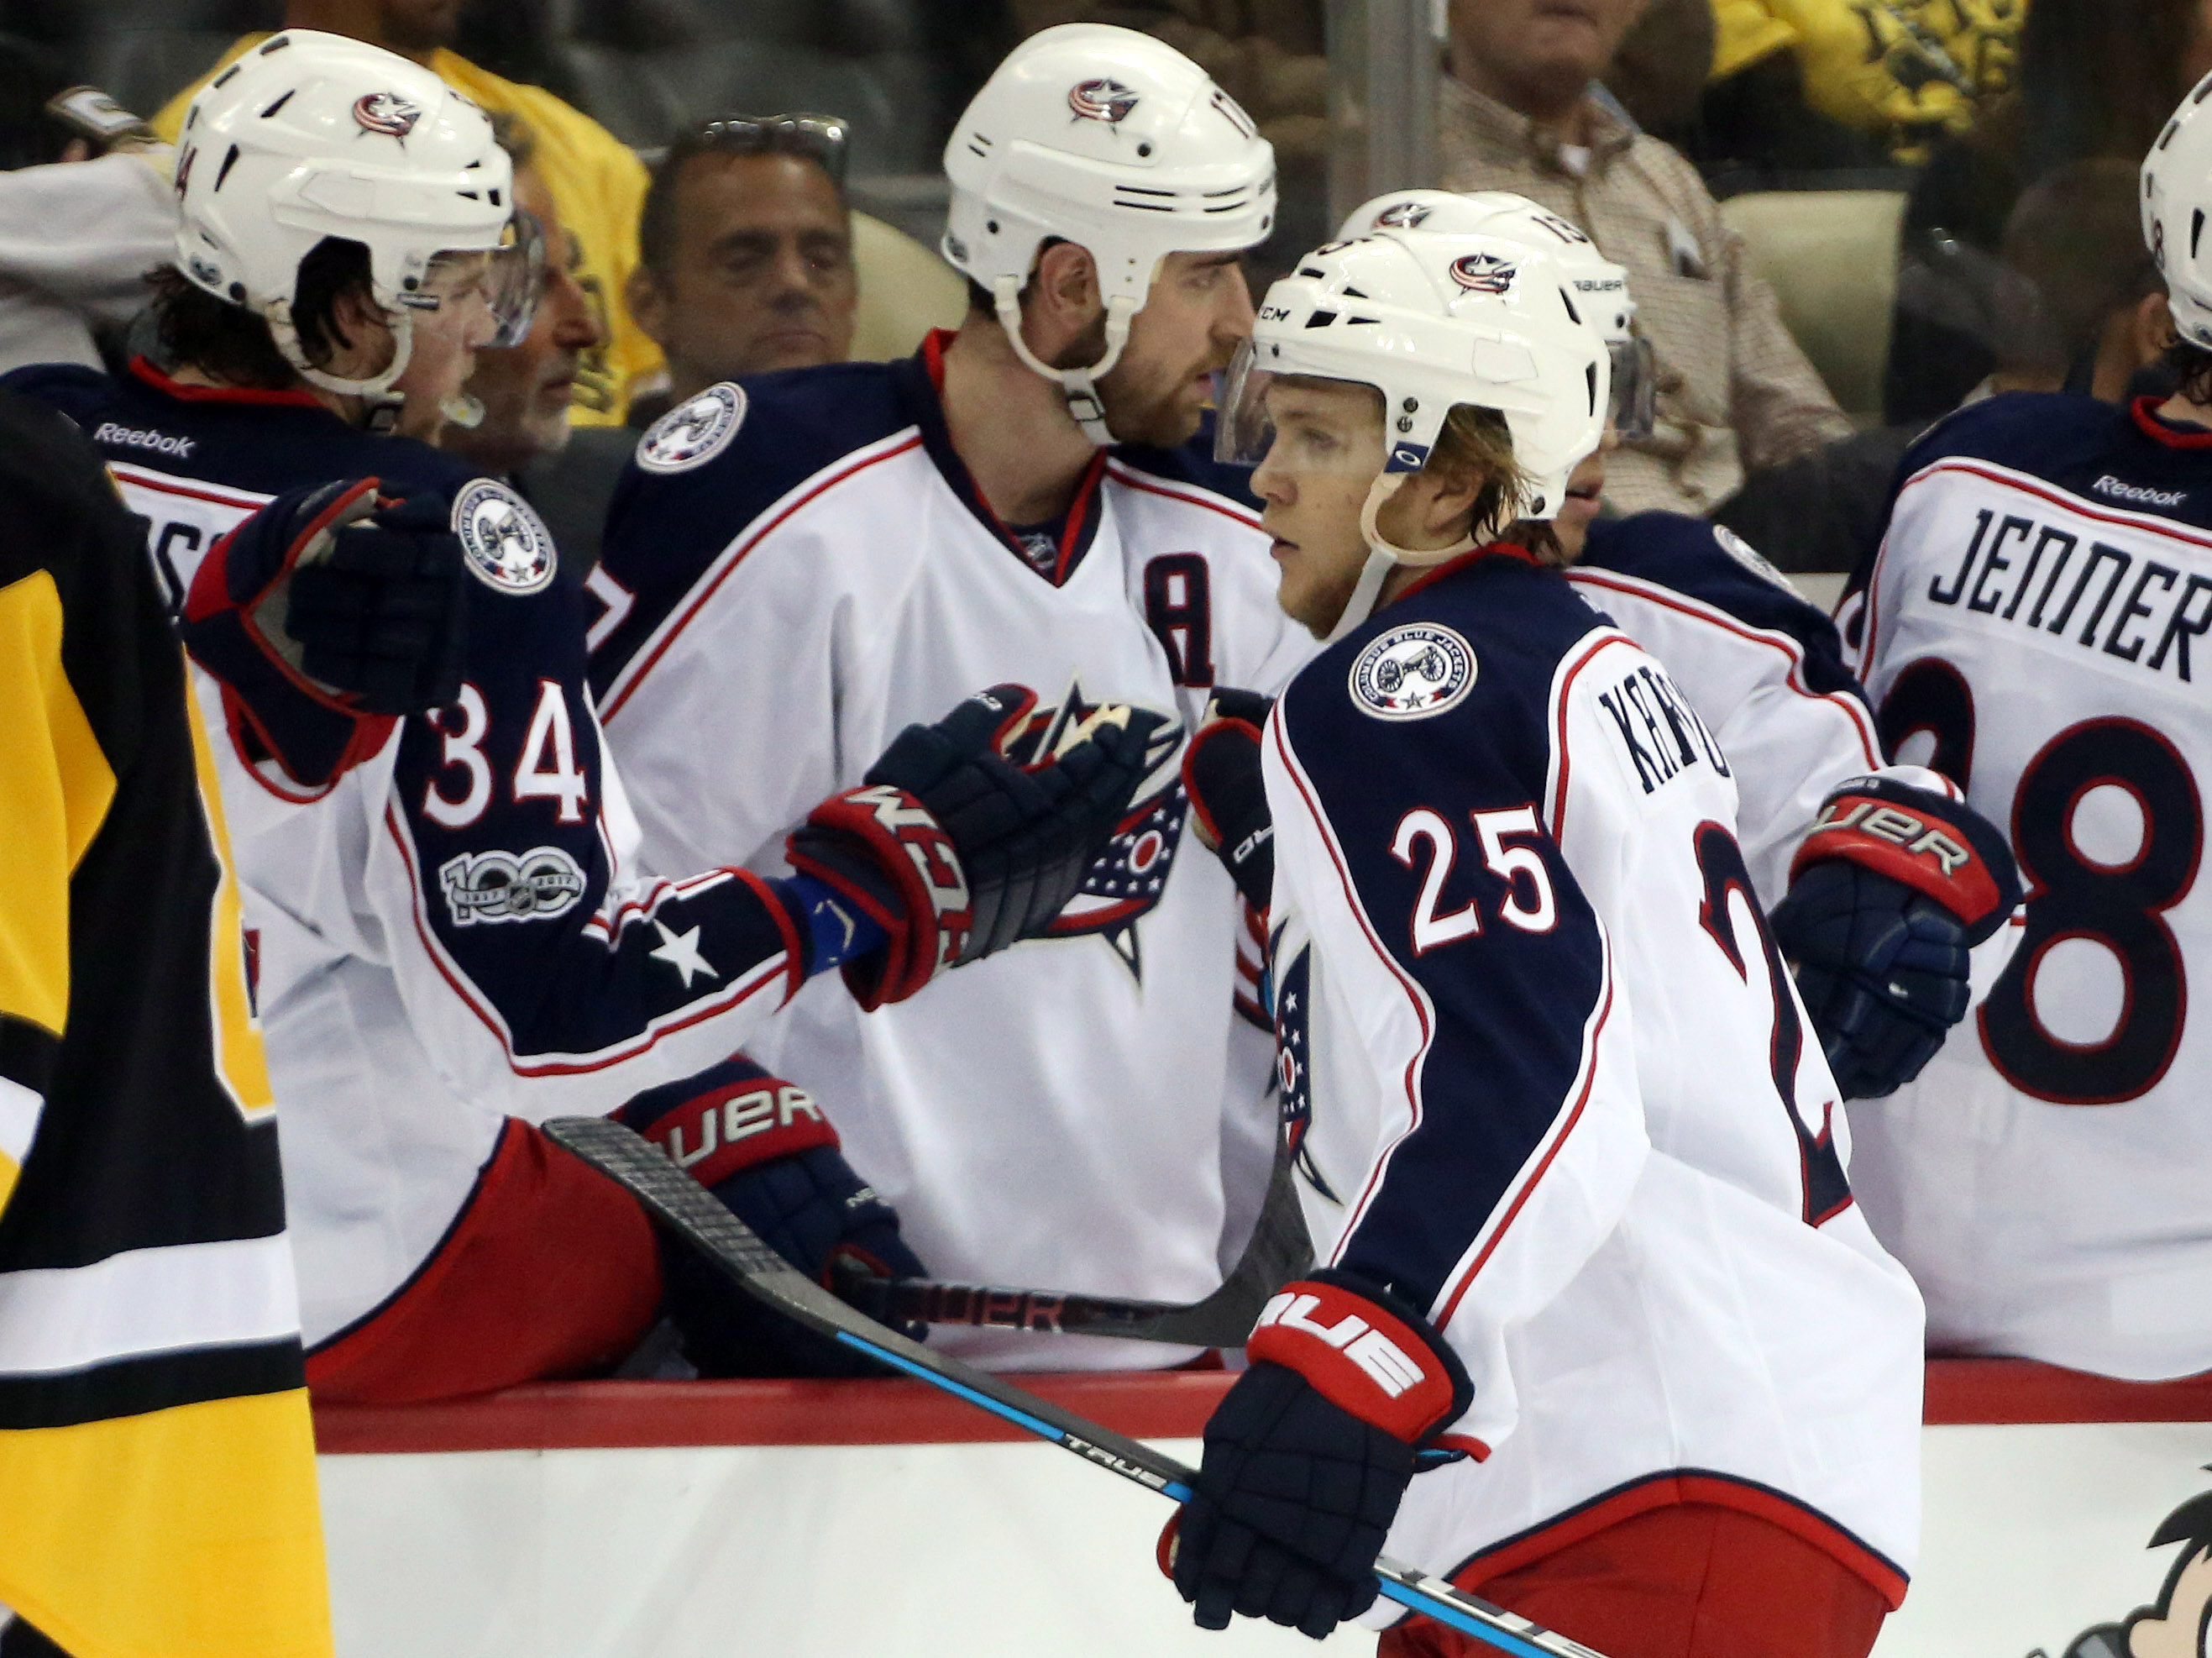 10022809-nhl-stanley-cup-playoffs-columbus-blue-jackets-at-pittsburgh-penguins